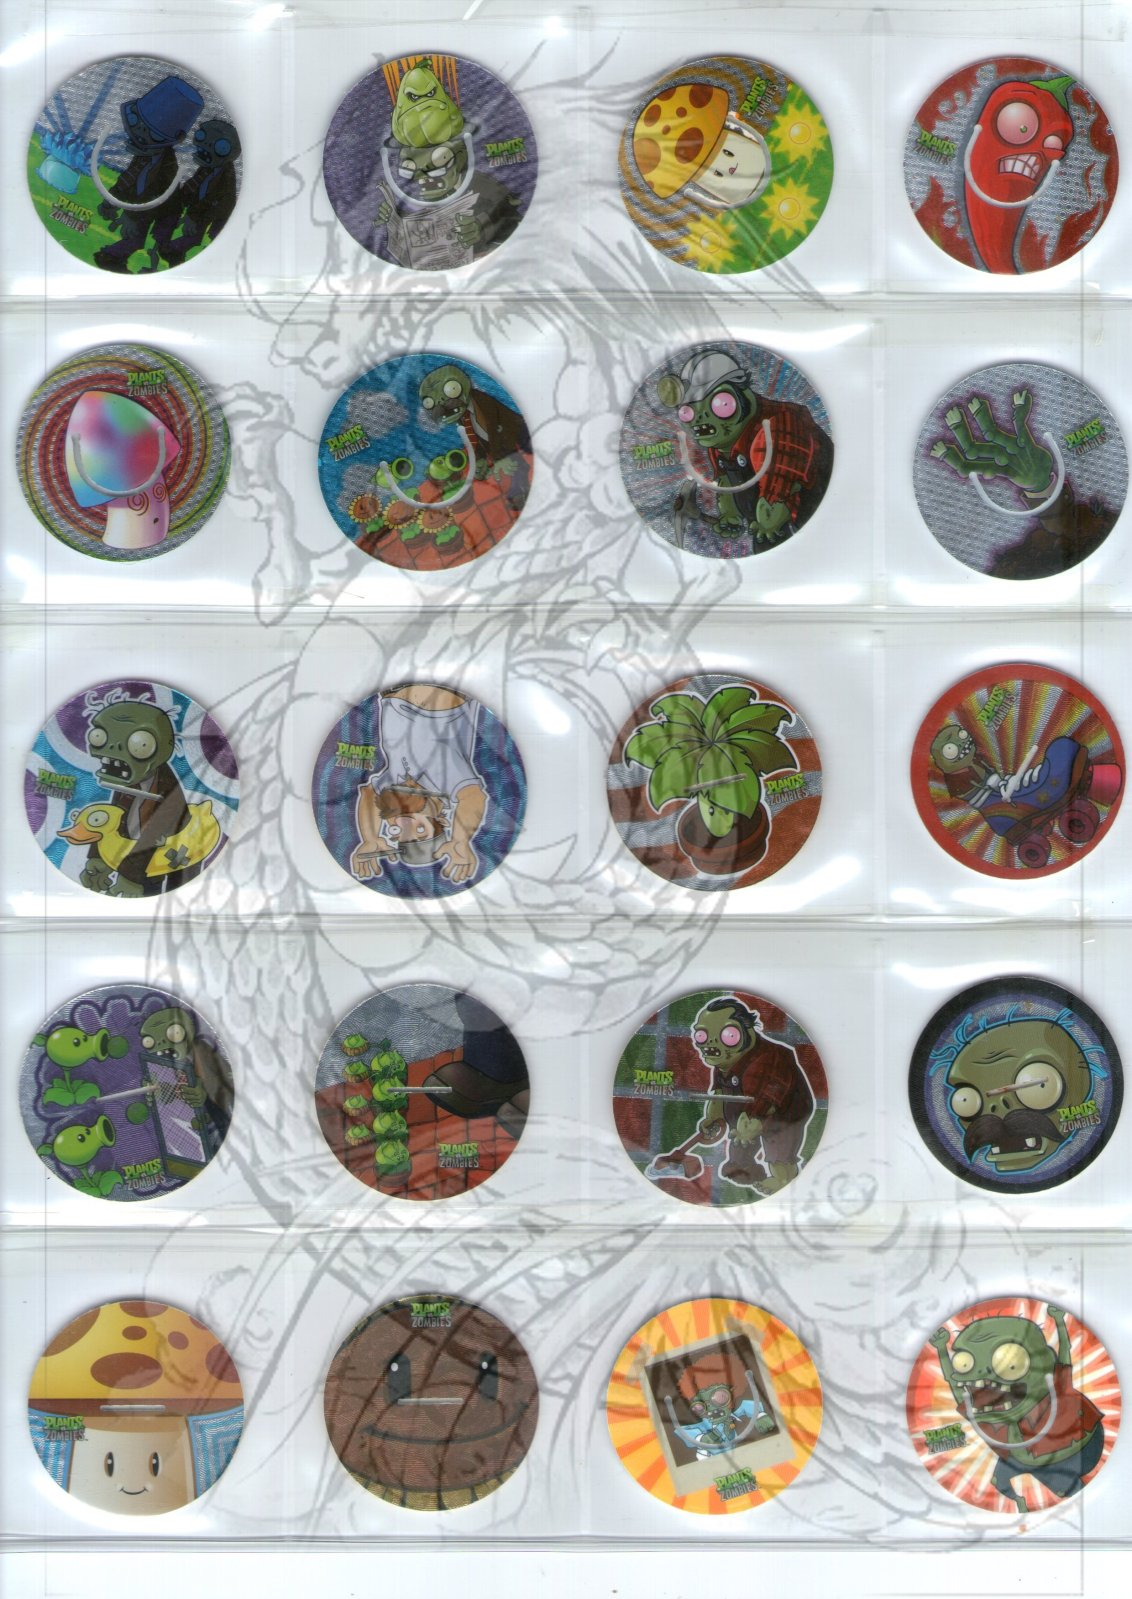 Tazos Plantas Vs Zombies de SABRITAS 15h5xy